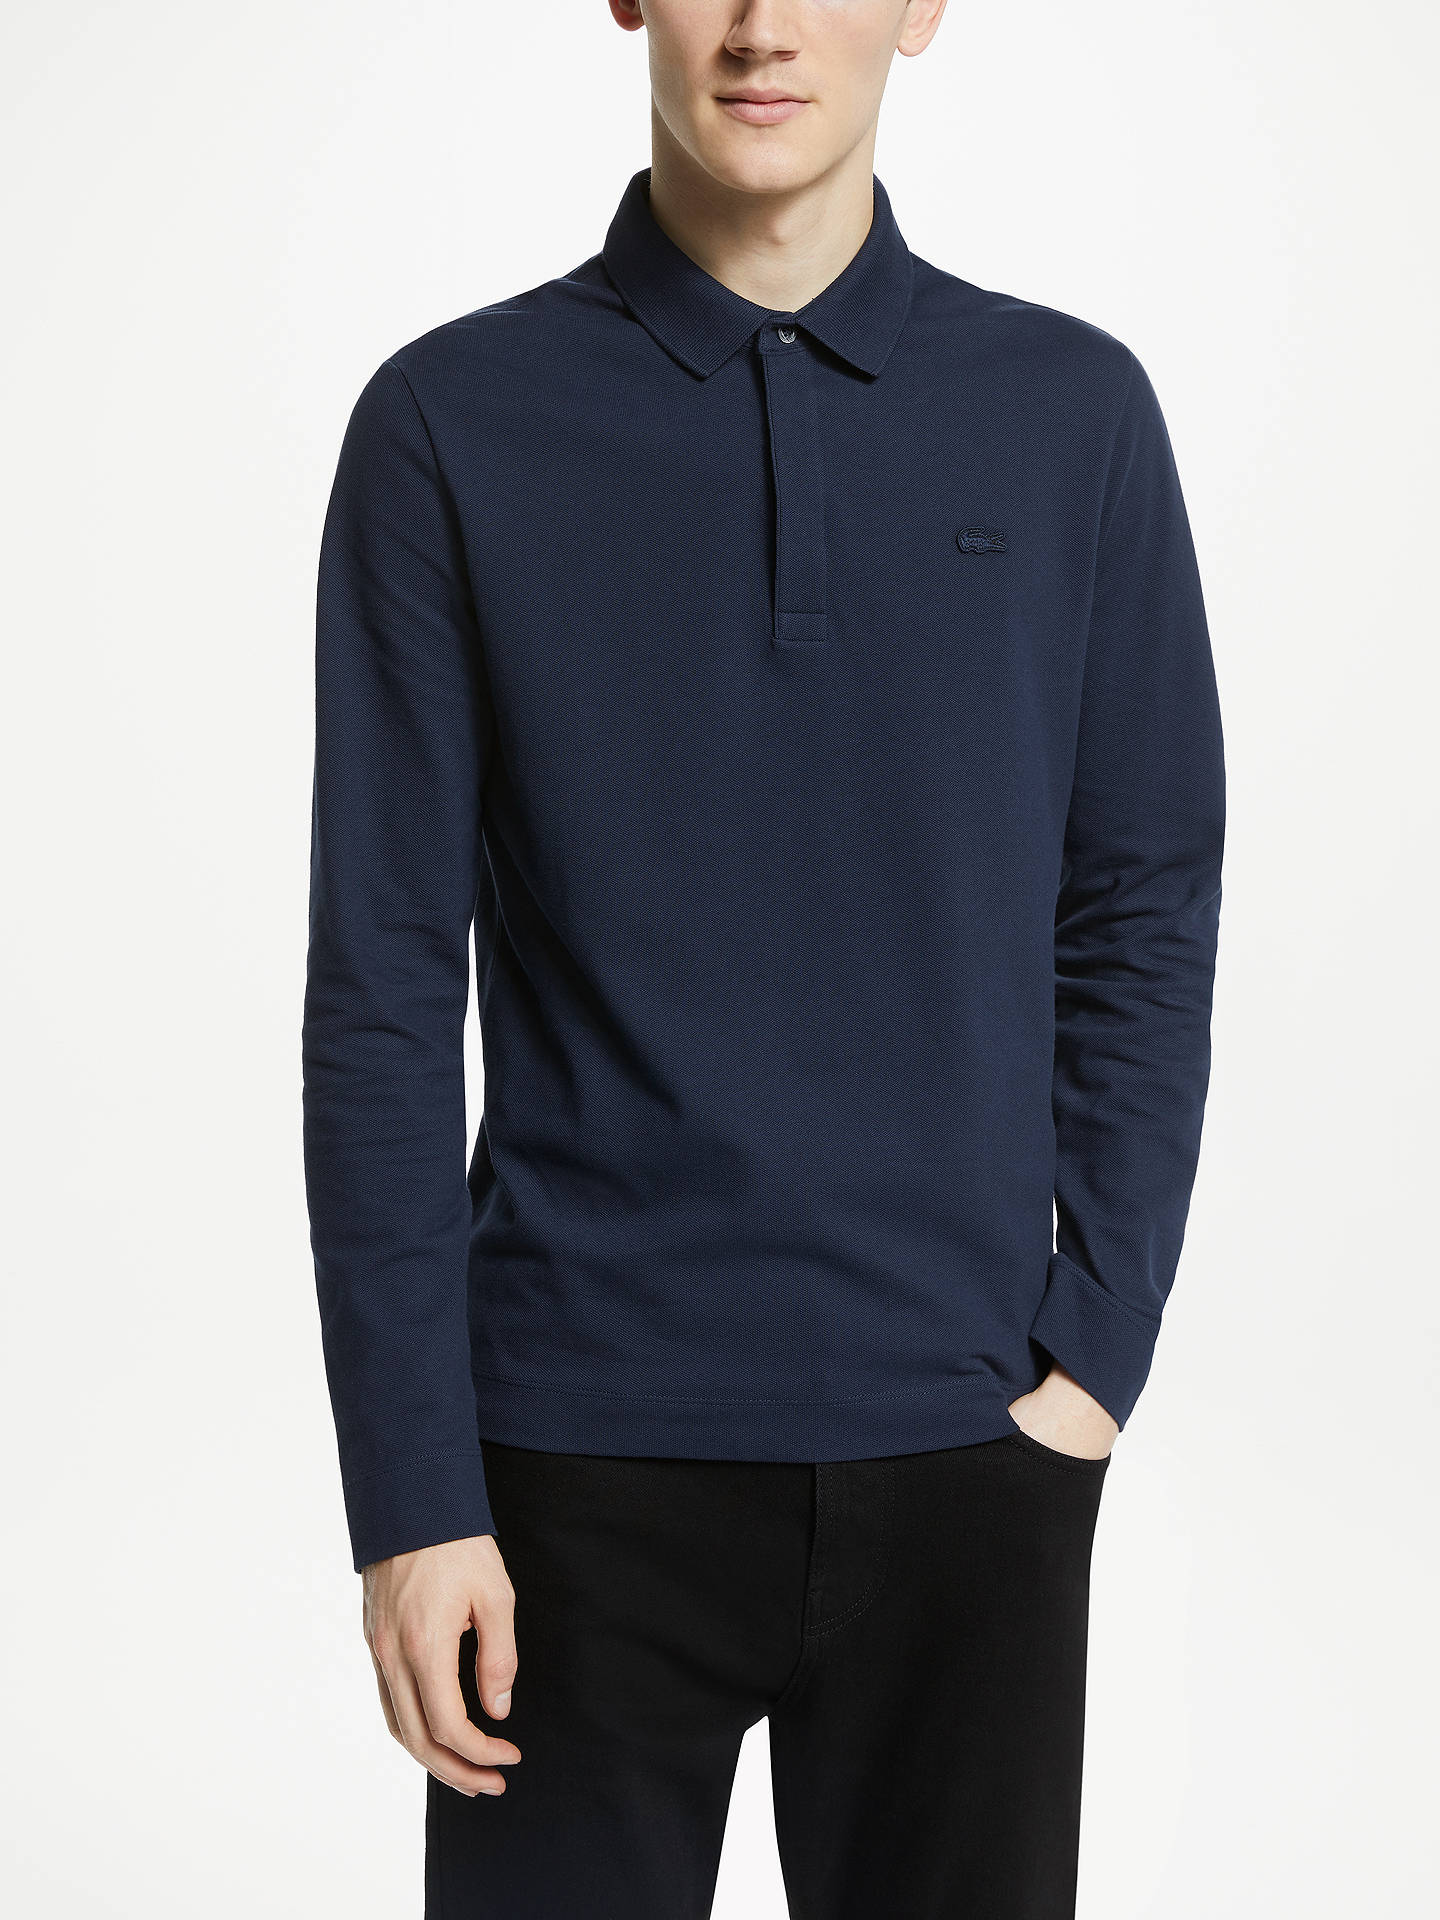 719eb6912f Buy Lacoste Paris Long Sleeve Polo Shirt, Marine, XL Online at  johnlewis.com ...